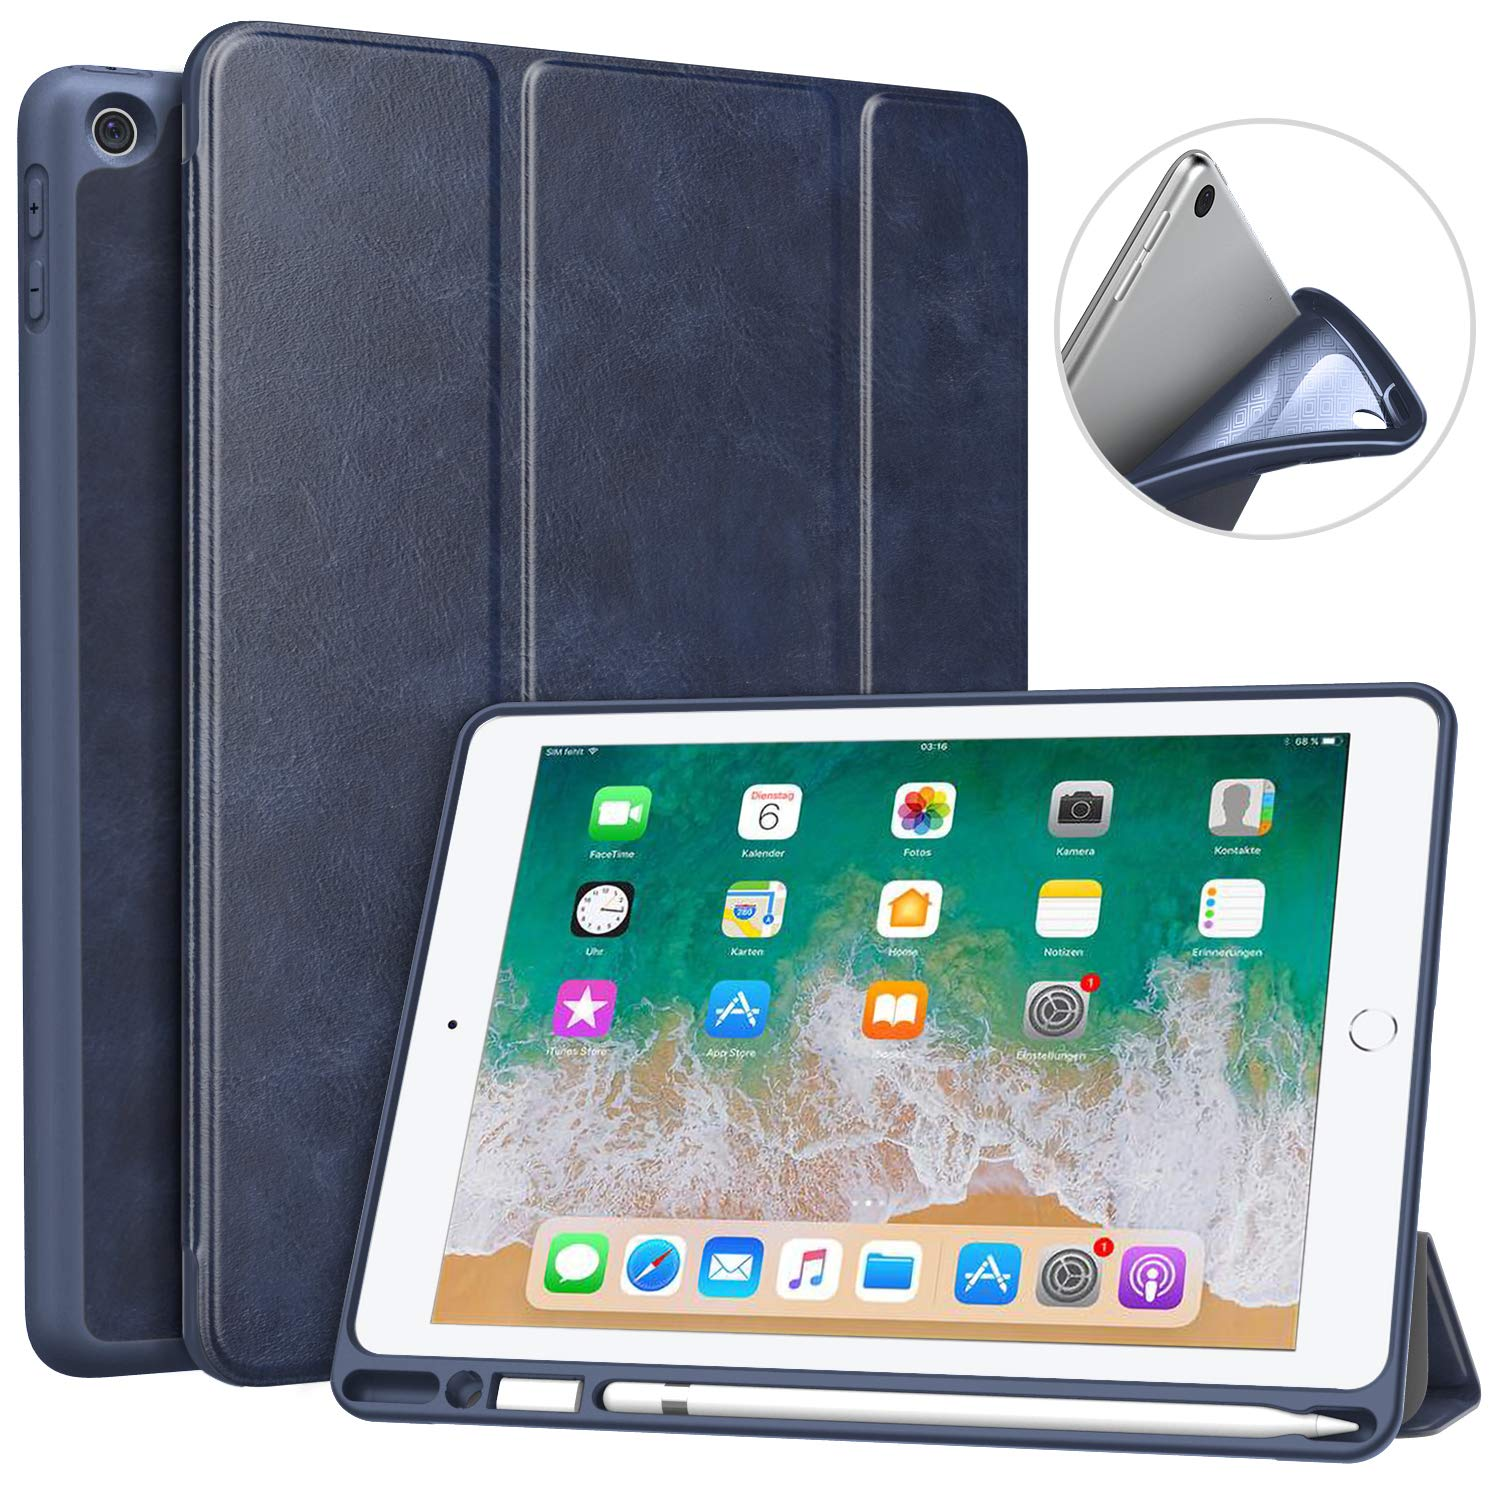 """MoKo Case Fit 2018 iPad 9.7 6th Generation with Pencil Holder - Slim Lightweight Smart Shell Stand Cover Case with Auto Wake/Sleep Fit iPad 9.7"""" 2018 Released Tablet (A1893/A1954), Indigo"""